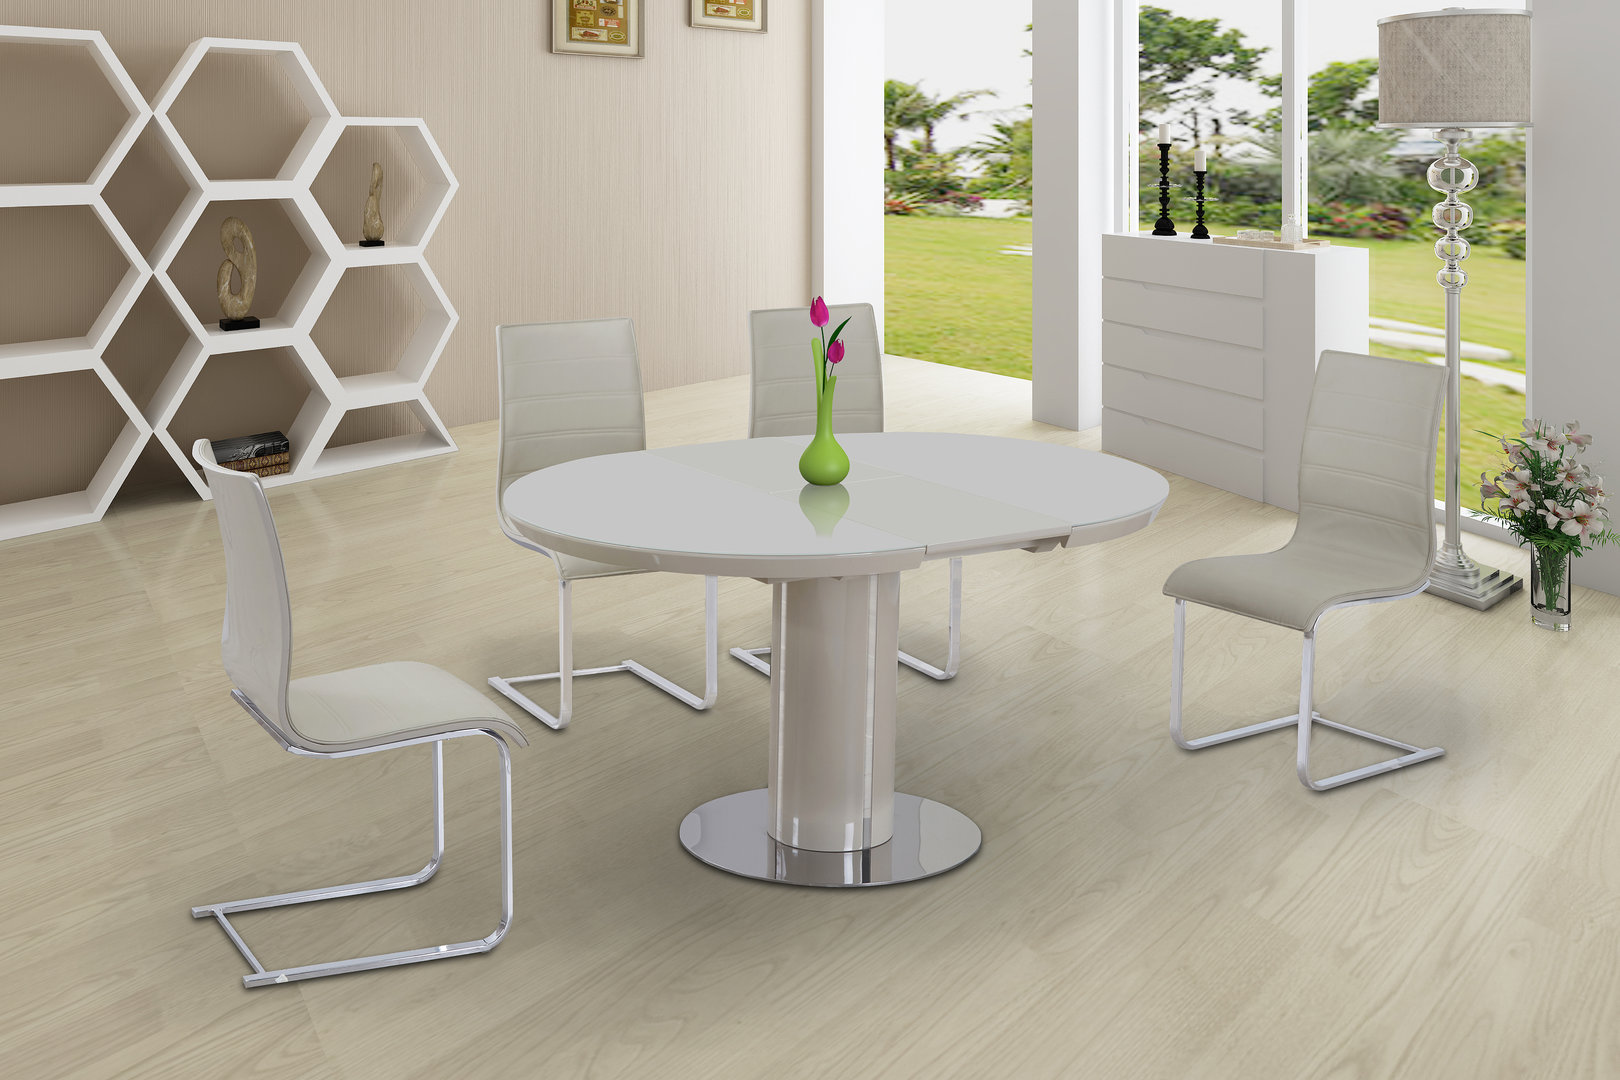 Round Cream Glass High Gloss Dining Table And 4 Chairs EBay